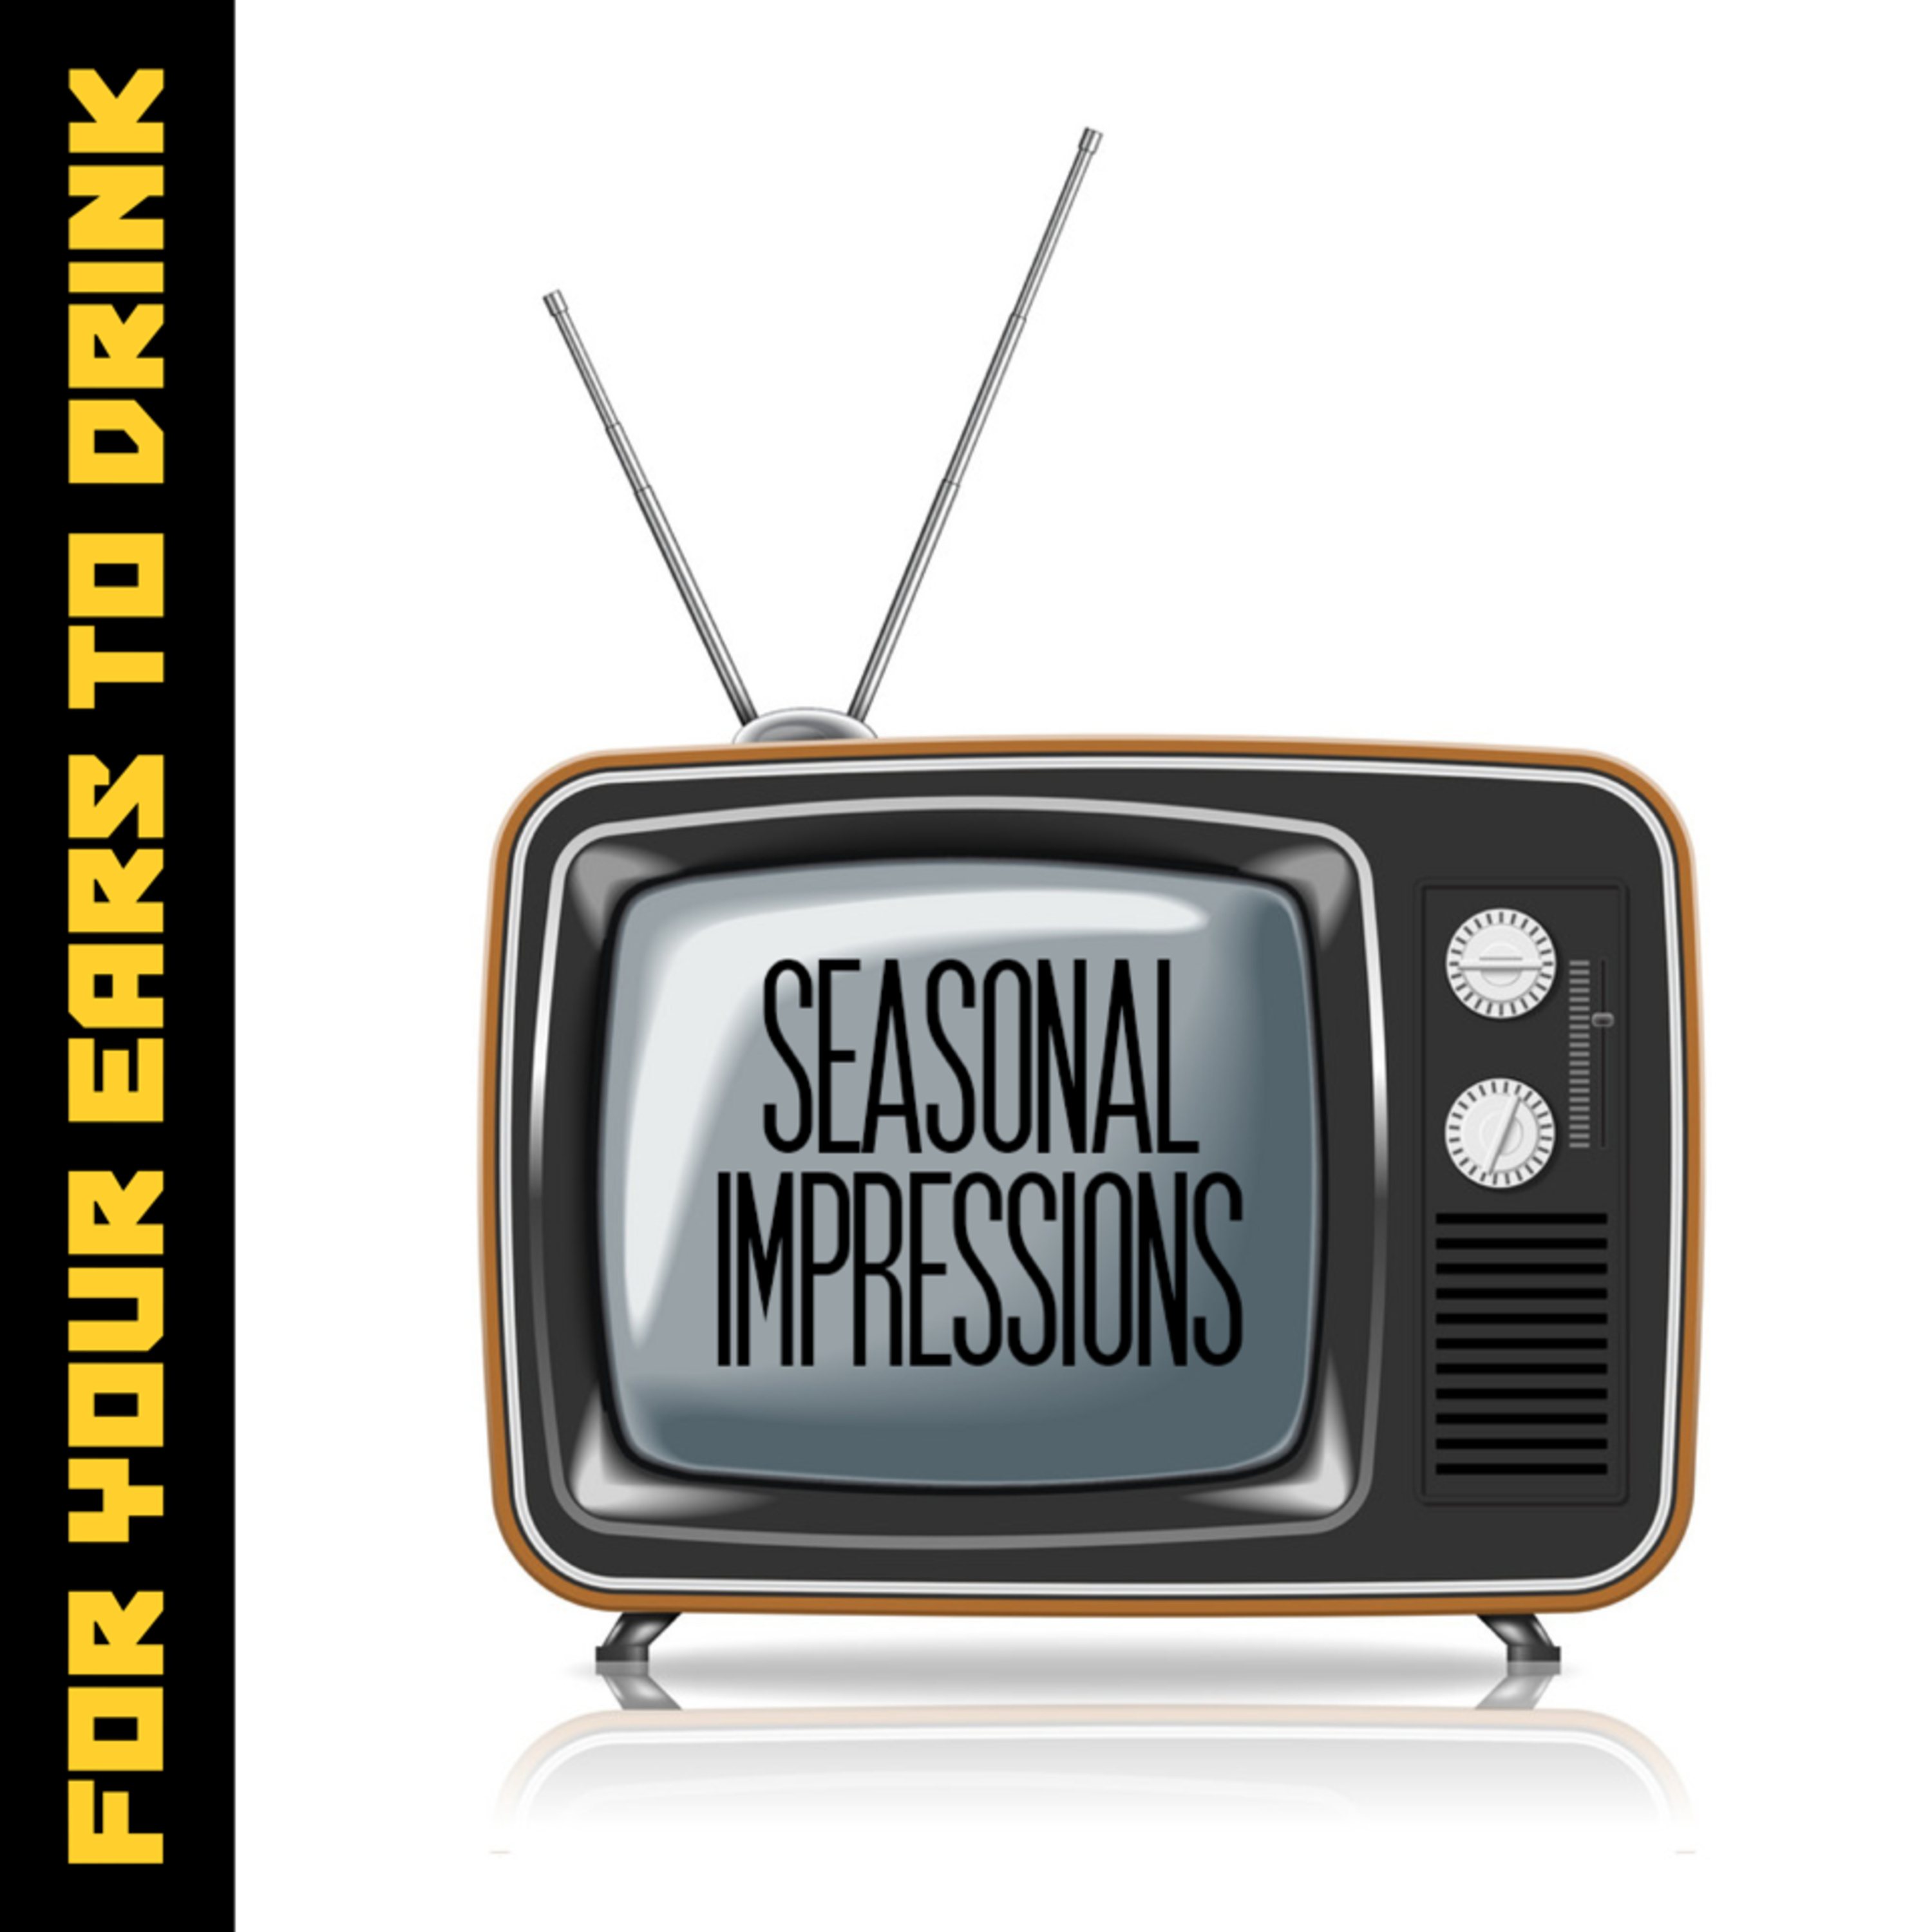 Seasonal Impressions - Episode 5: Person of Interest Season 5 - Batman goes to Westworld.